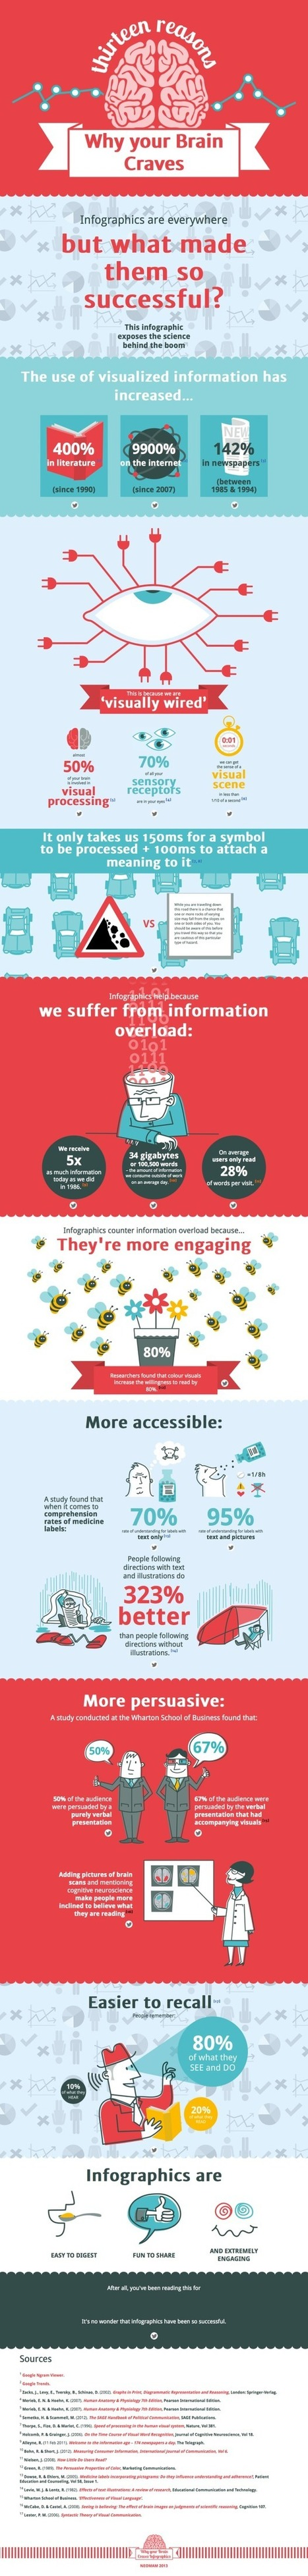 13 Reasons Your Brain Craves Infographics [Infographic] | Educational insights by Cindy | Scoop.it